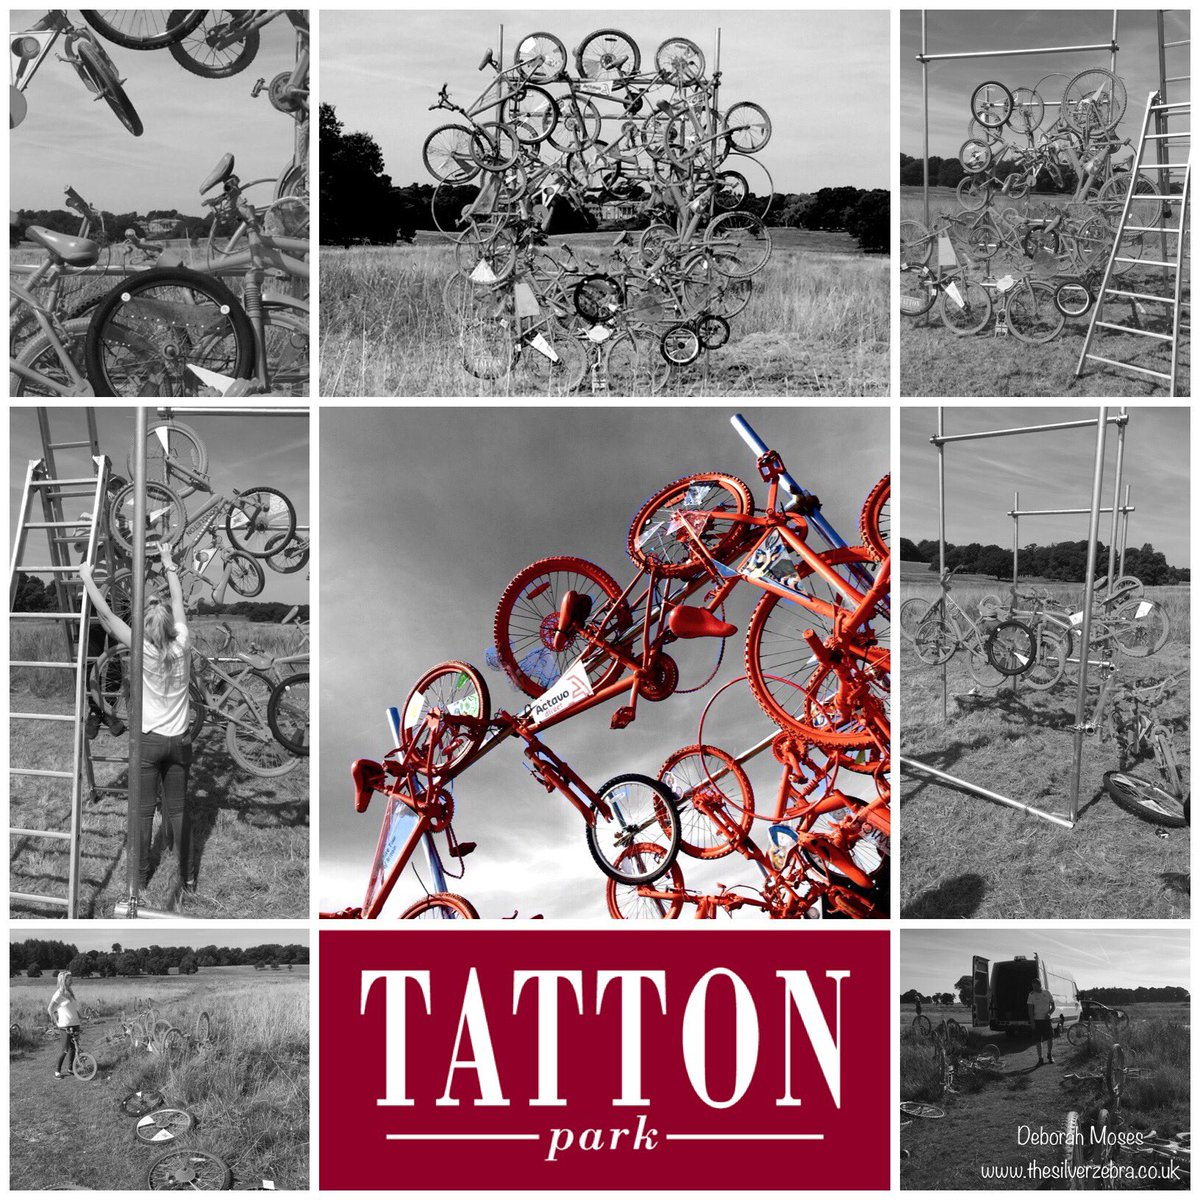 Visiting @tatton_park this wk? Don't forget to tweet your photo #tsztob